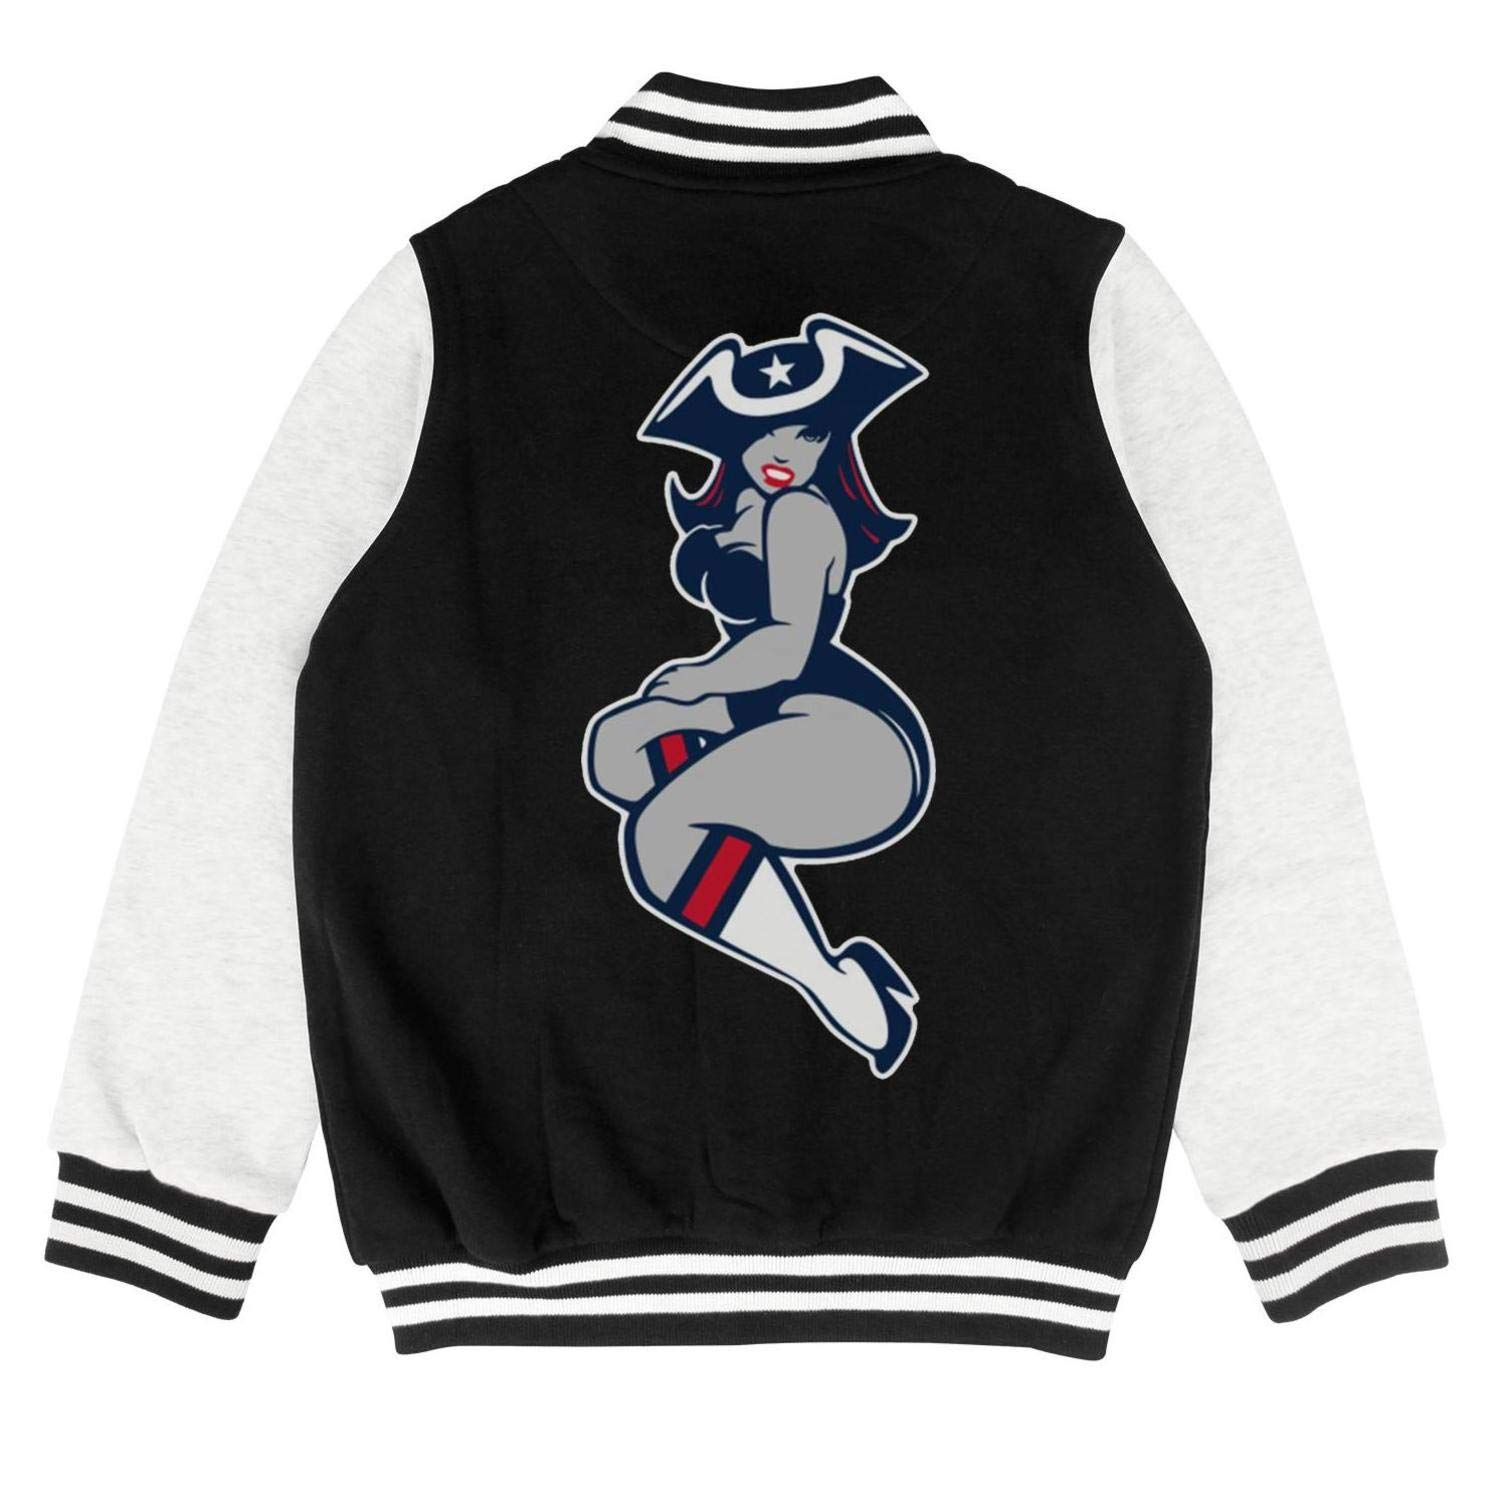 Cartoon Style Cotton Sweatshirt Button Varsity Baseball Jacket 2-10 Years Kids Girls Boys Football-MVP-Tom-Goat-12